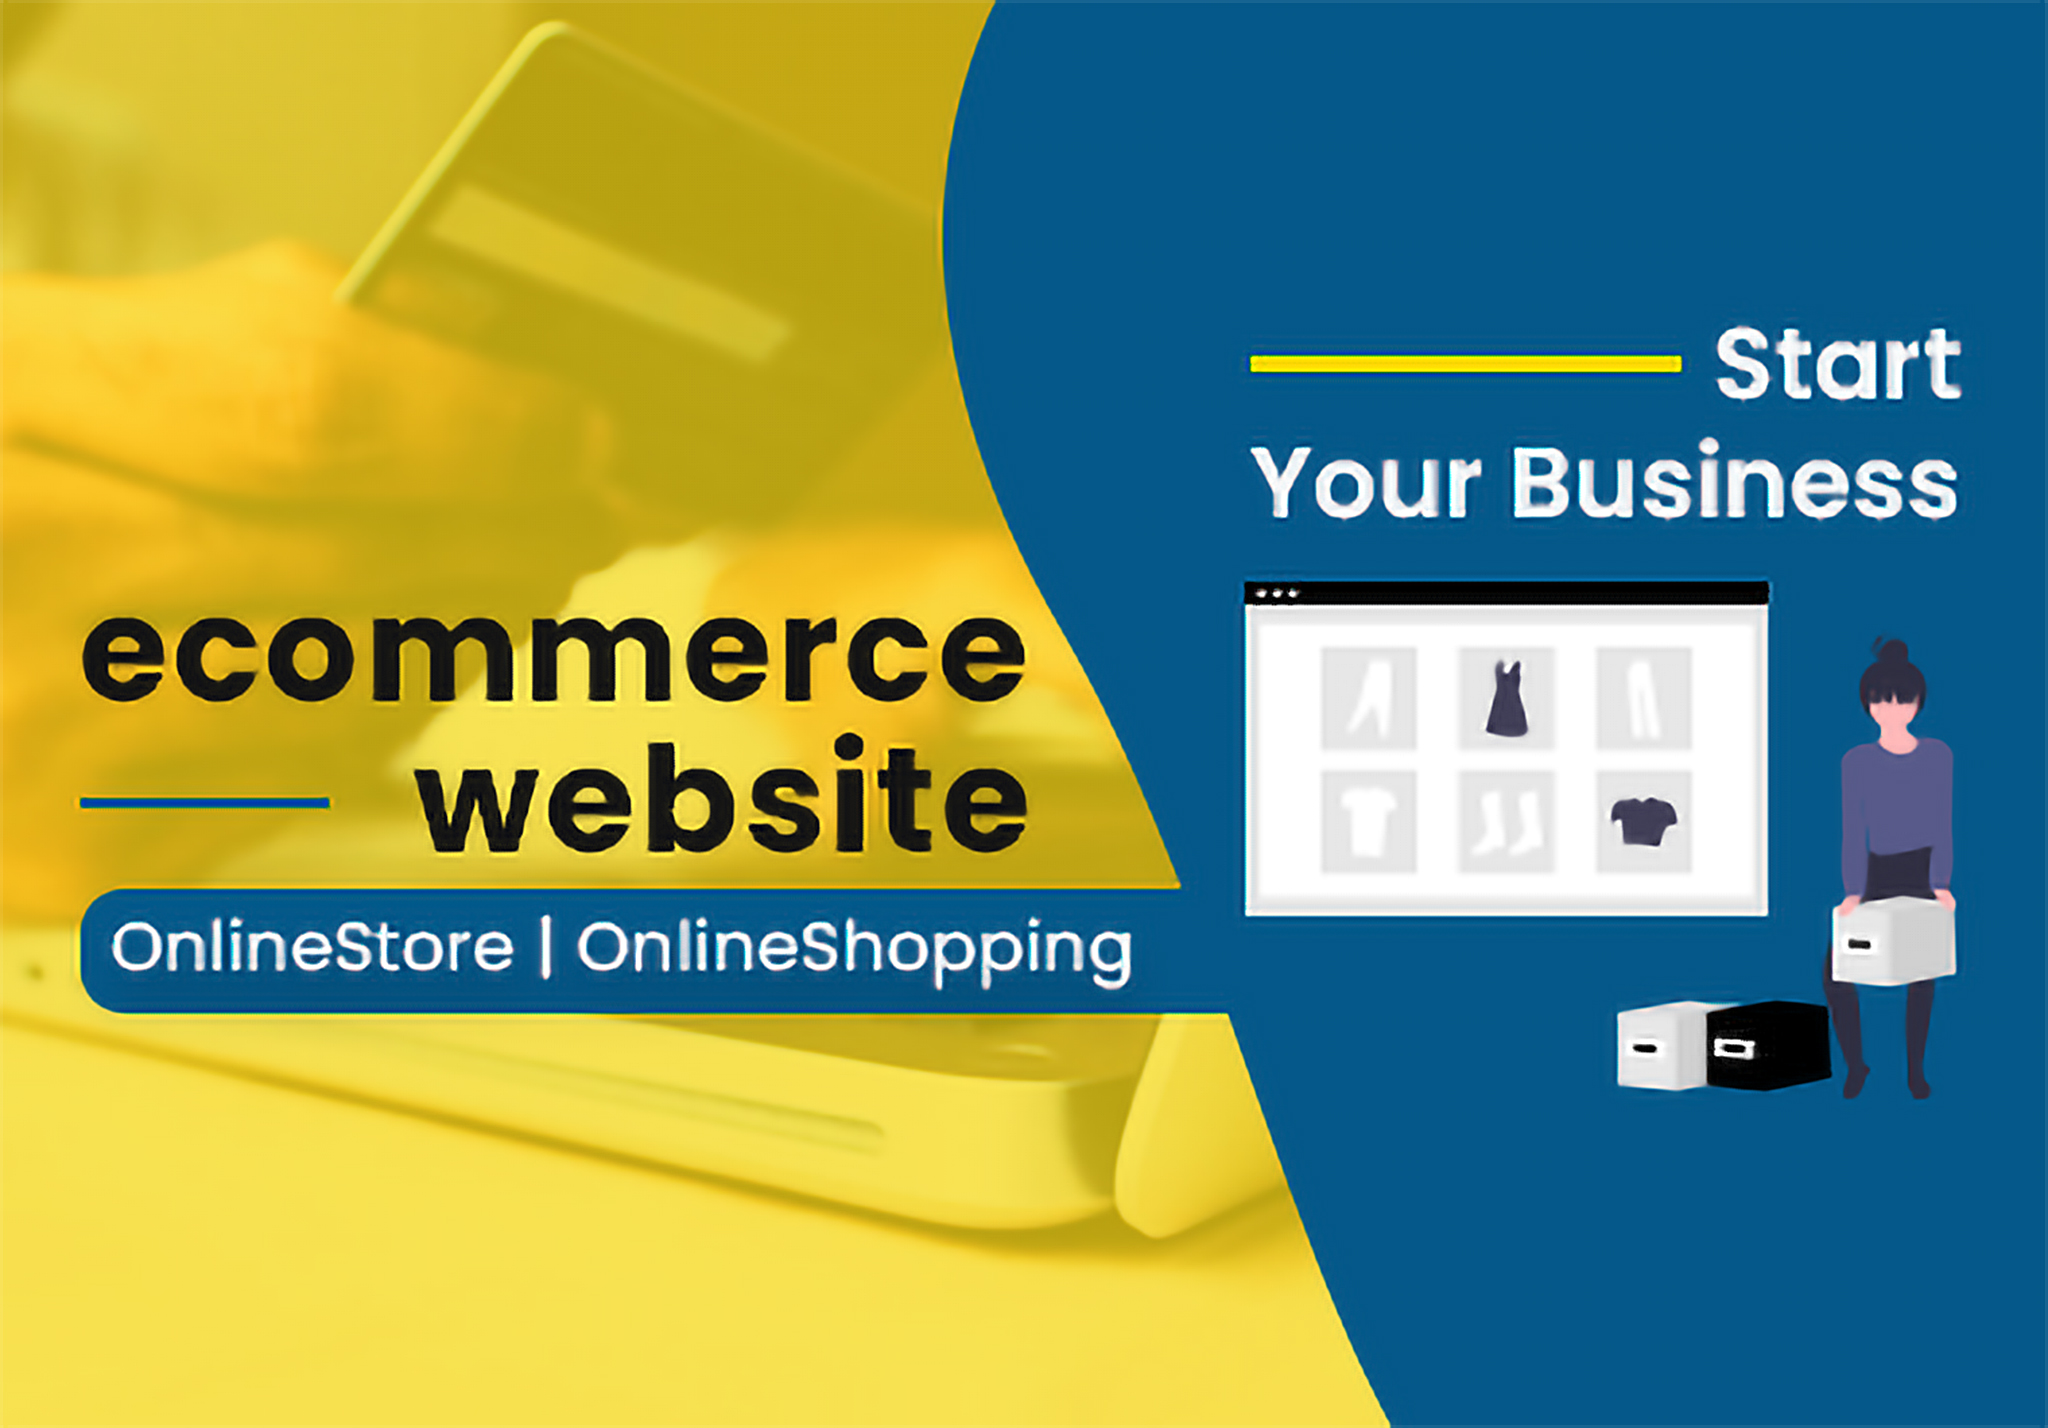 Build an impressive ecommerce online shopping website